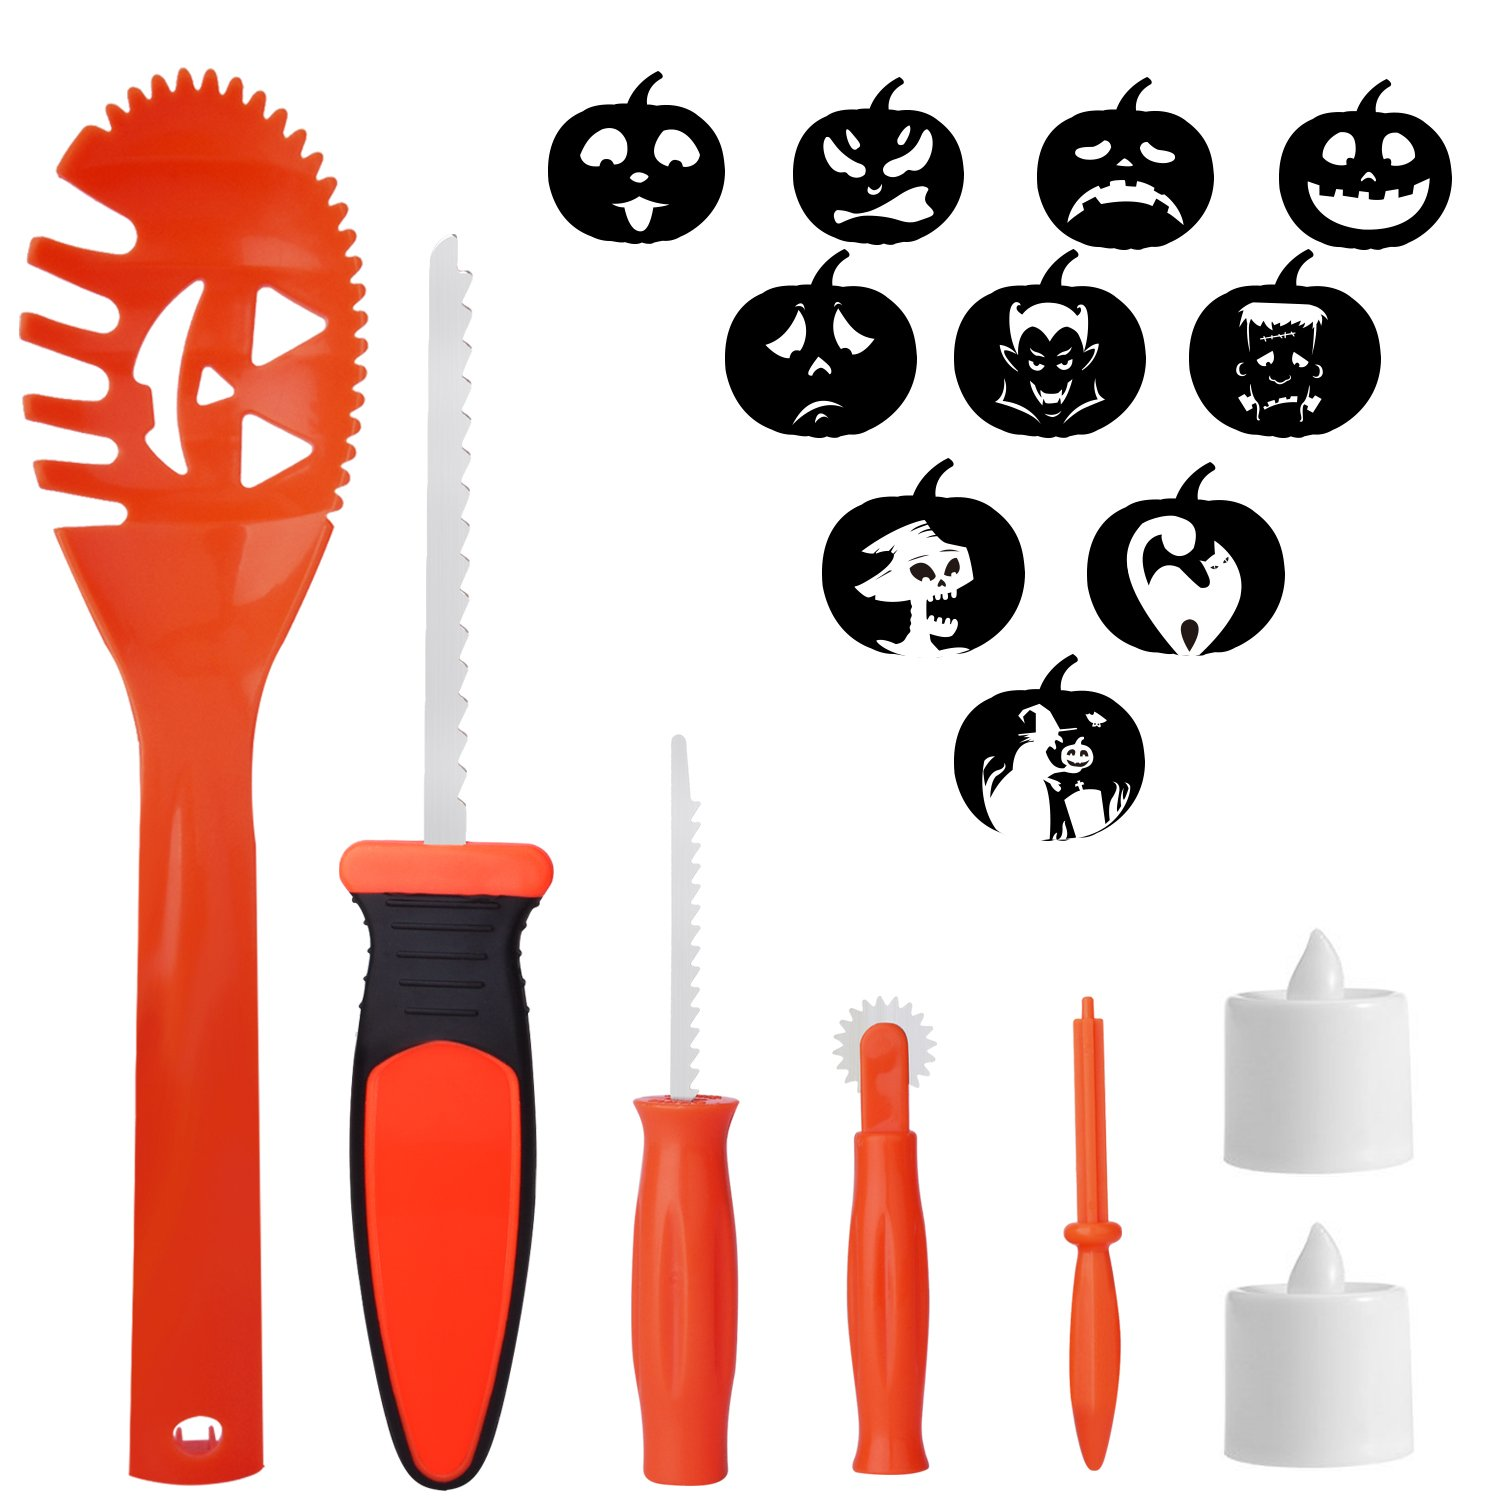 SKINOSM Pumpkin Carving Kit for Kids, 5 Easy Halloween Pumpkin Carving Tools Set, 2 LED Candles & 10 Carving Stencils by SKINOSM